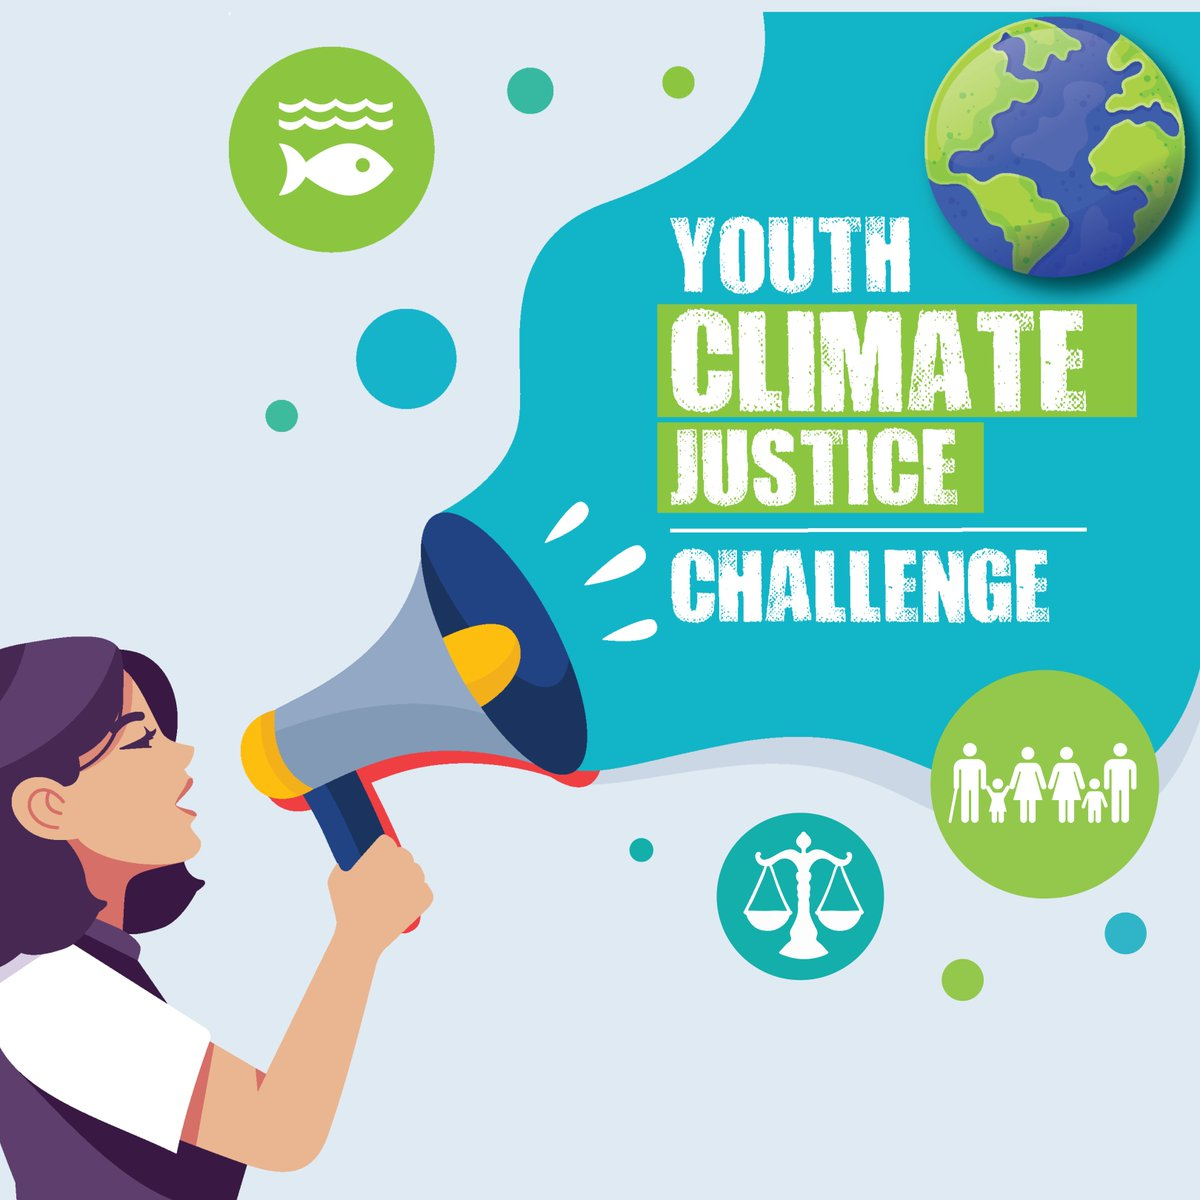 To celebrate the 5th Anniversary of the #SDGs, @ECOUNESCO is delighted to be launching the #YouthClimateJustice Challenge with @IrishGirlGuides @spunOut @GirlsBrigadeIrl @yifm @the_nonameclub  Read more > https://t.co/JmfcSIc5jO  #YouthClimateJustice #YouthClimateJusticeChallenge https://t.co/GsjfrlpbCN